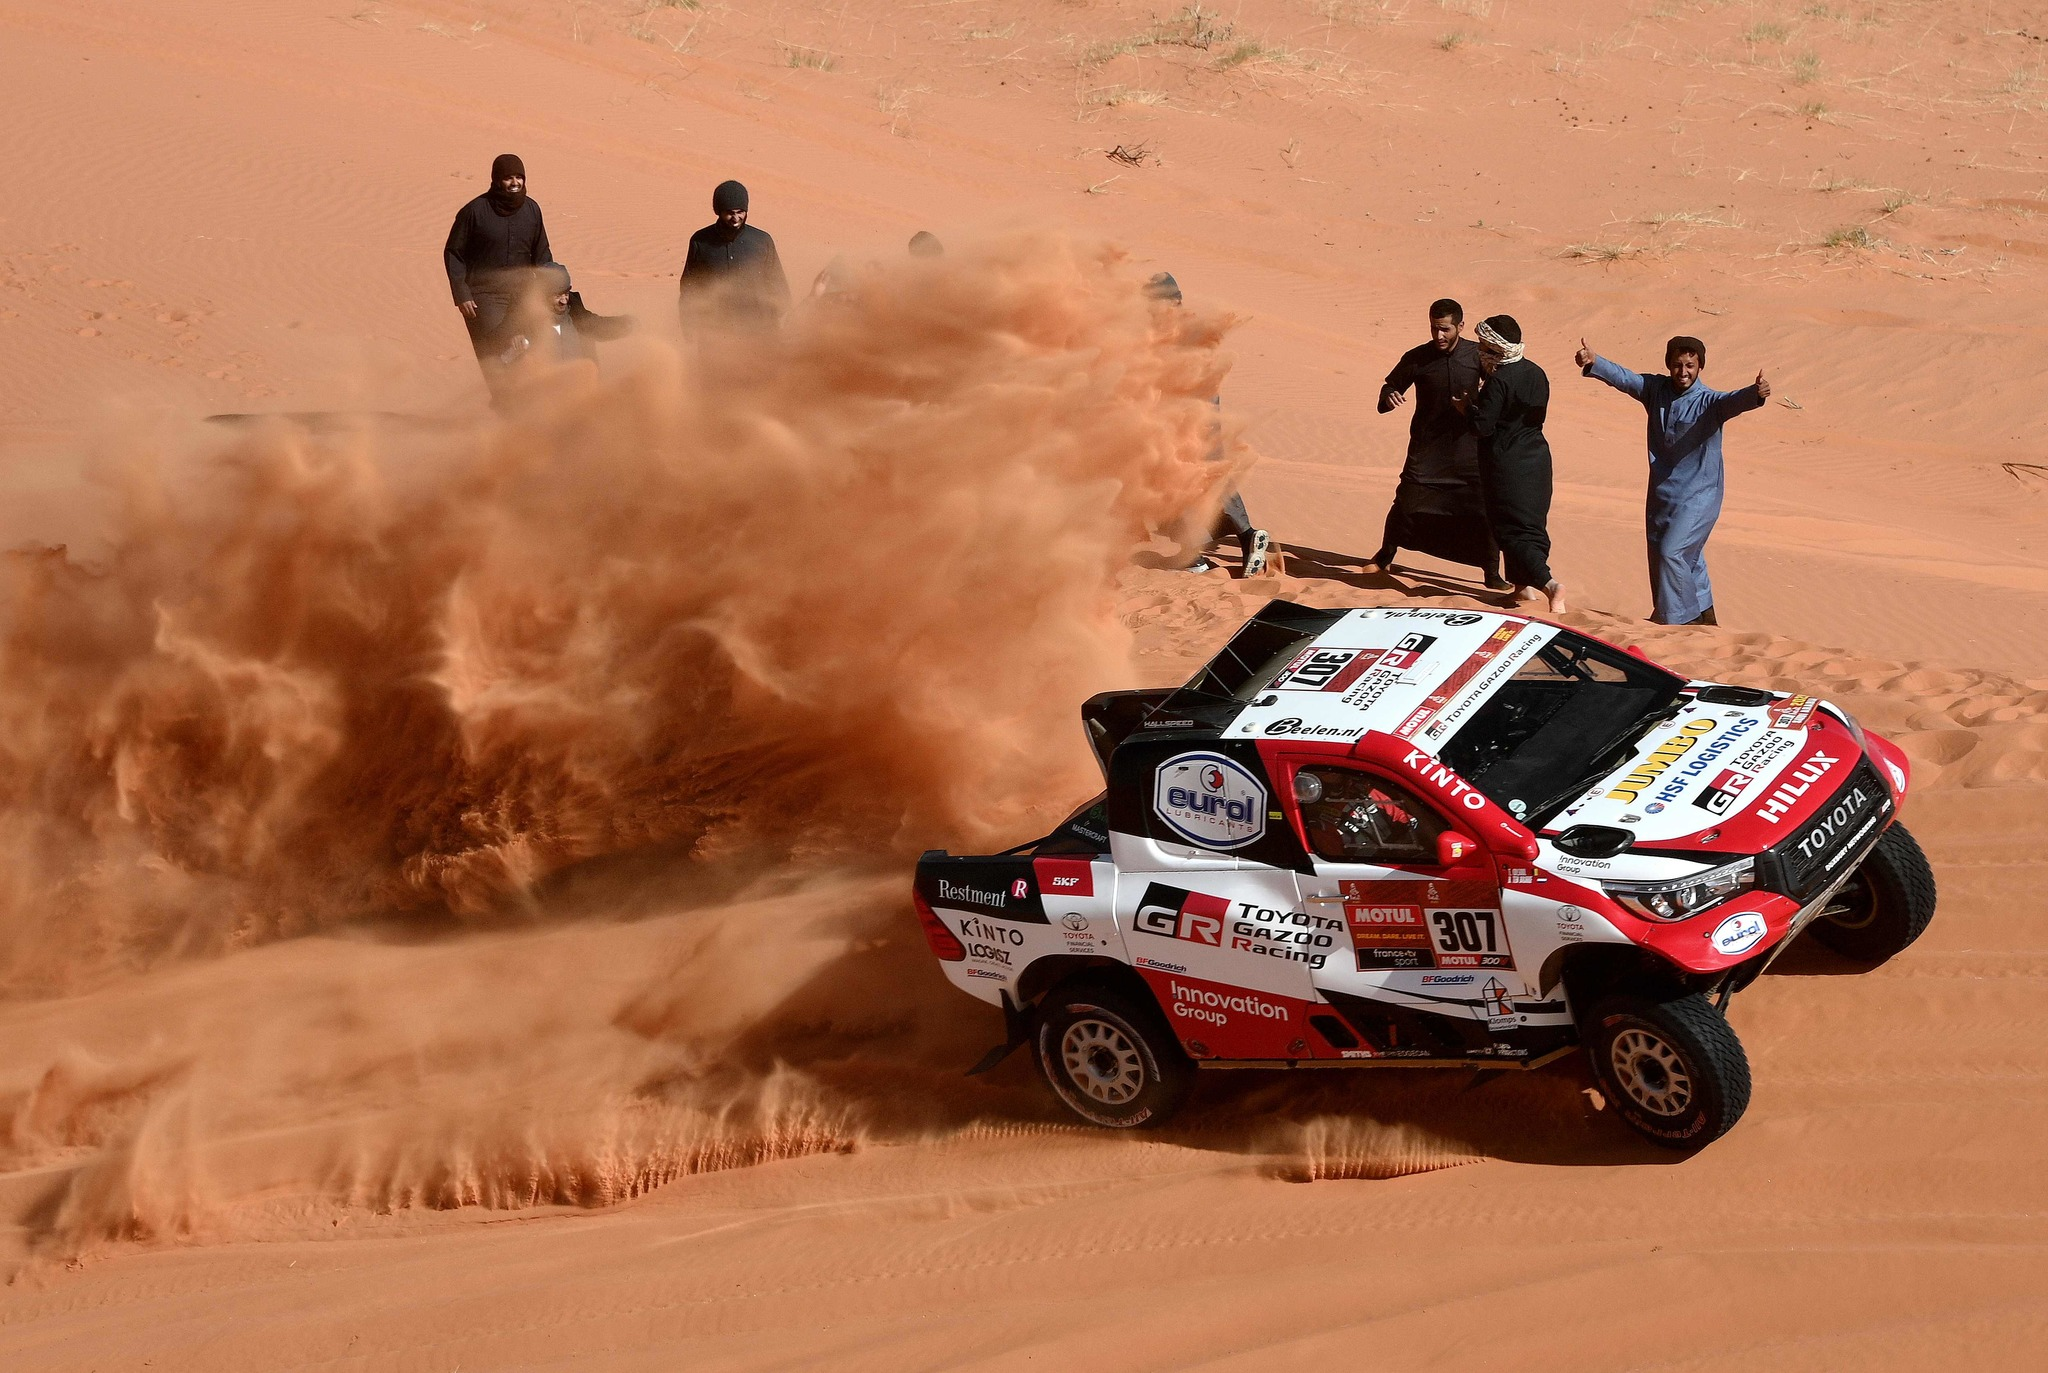 <HIT>Toyota</HIT>s driver Nasser Al-Attiyah of Qatar (R) and his co-driver Mathieu Baumel of France competes during the Stage 6 of the Dakar 2020 between Hail and Riyadh, Saudi Arabia, on January 10, 2020. (Photo by FRANCK FIFE / AFP)